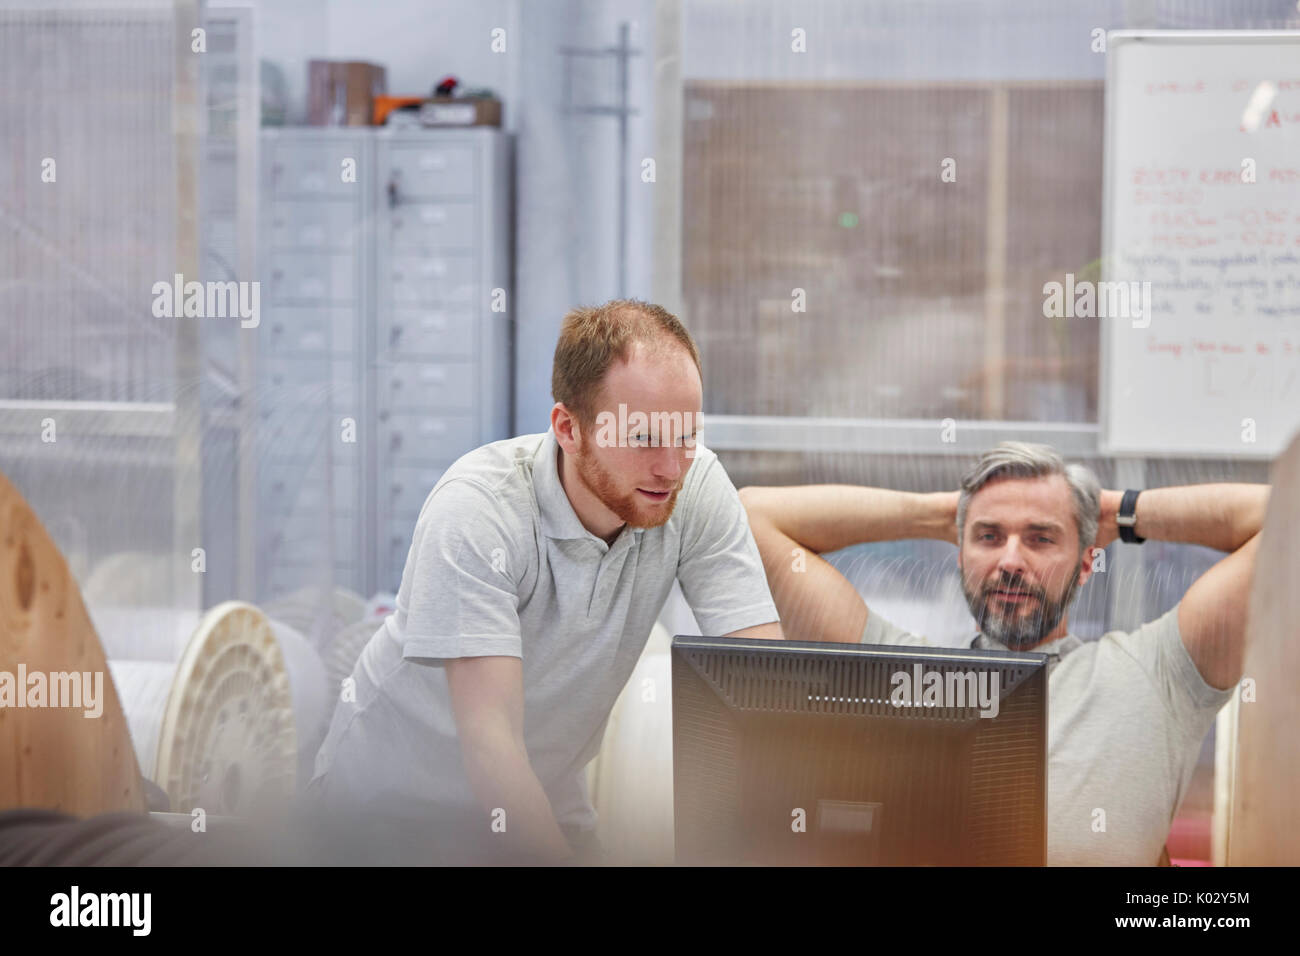 Male supervisors working at computer in factory - Stock Image